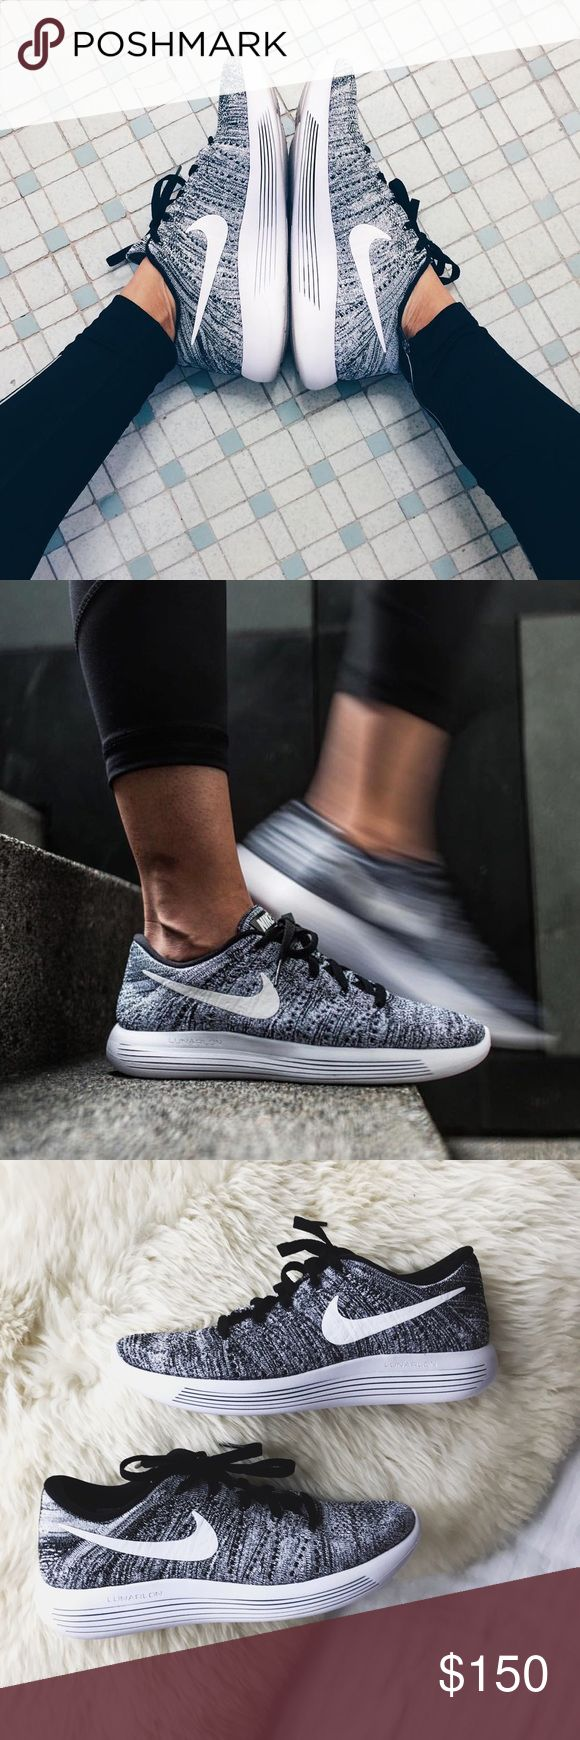 Nike Oreo Flyknit Lunarepic Low Sneakers •The Nike LunarEpic Low Flyknit Women's Running Shoe is lightweight and breathable with targeted cushioning for a soft, effortless sensation underfoot.  •Women's size 7. Would be best for a 6.5 or 7.  •New in box,